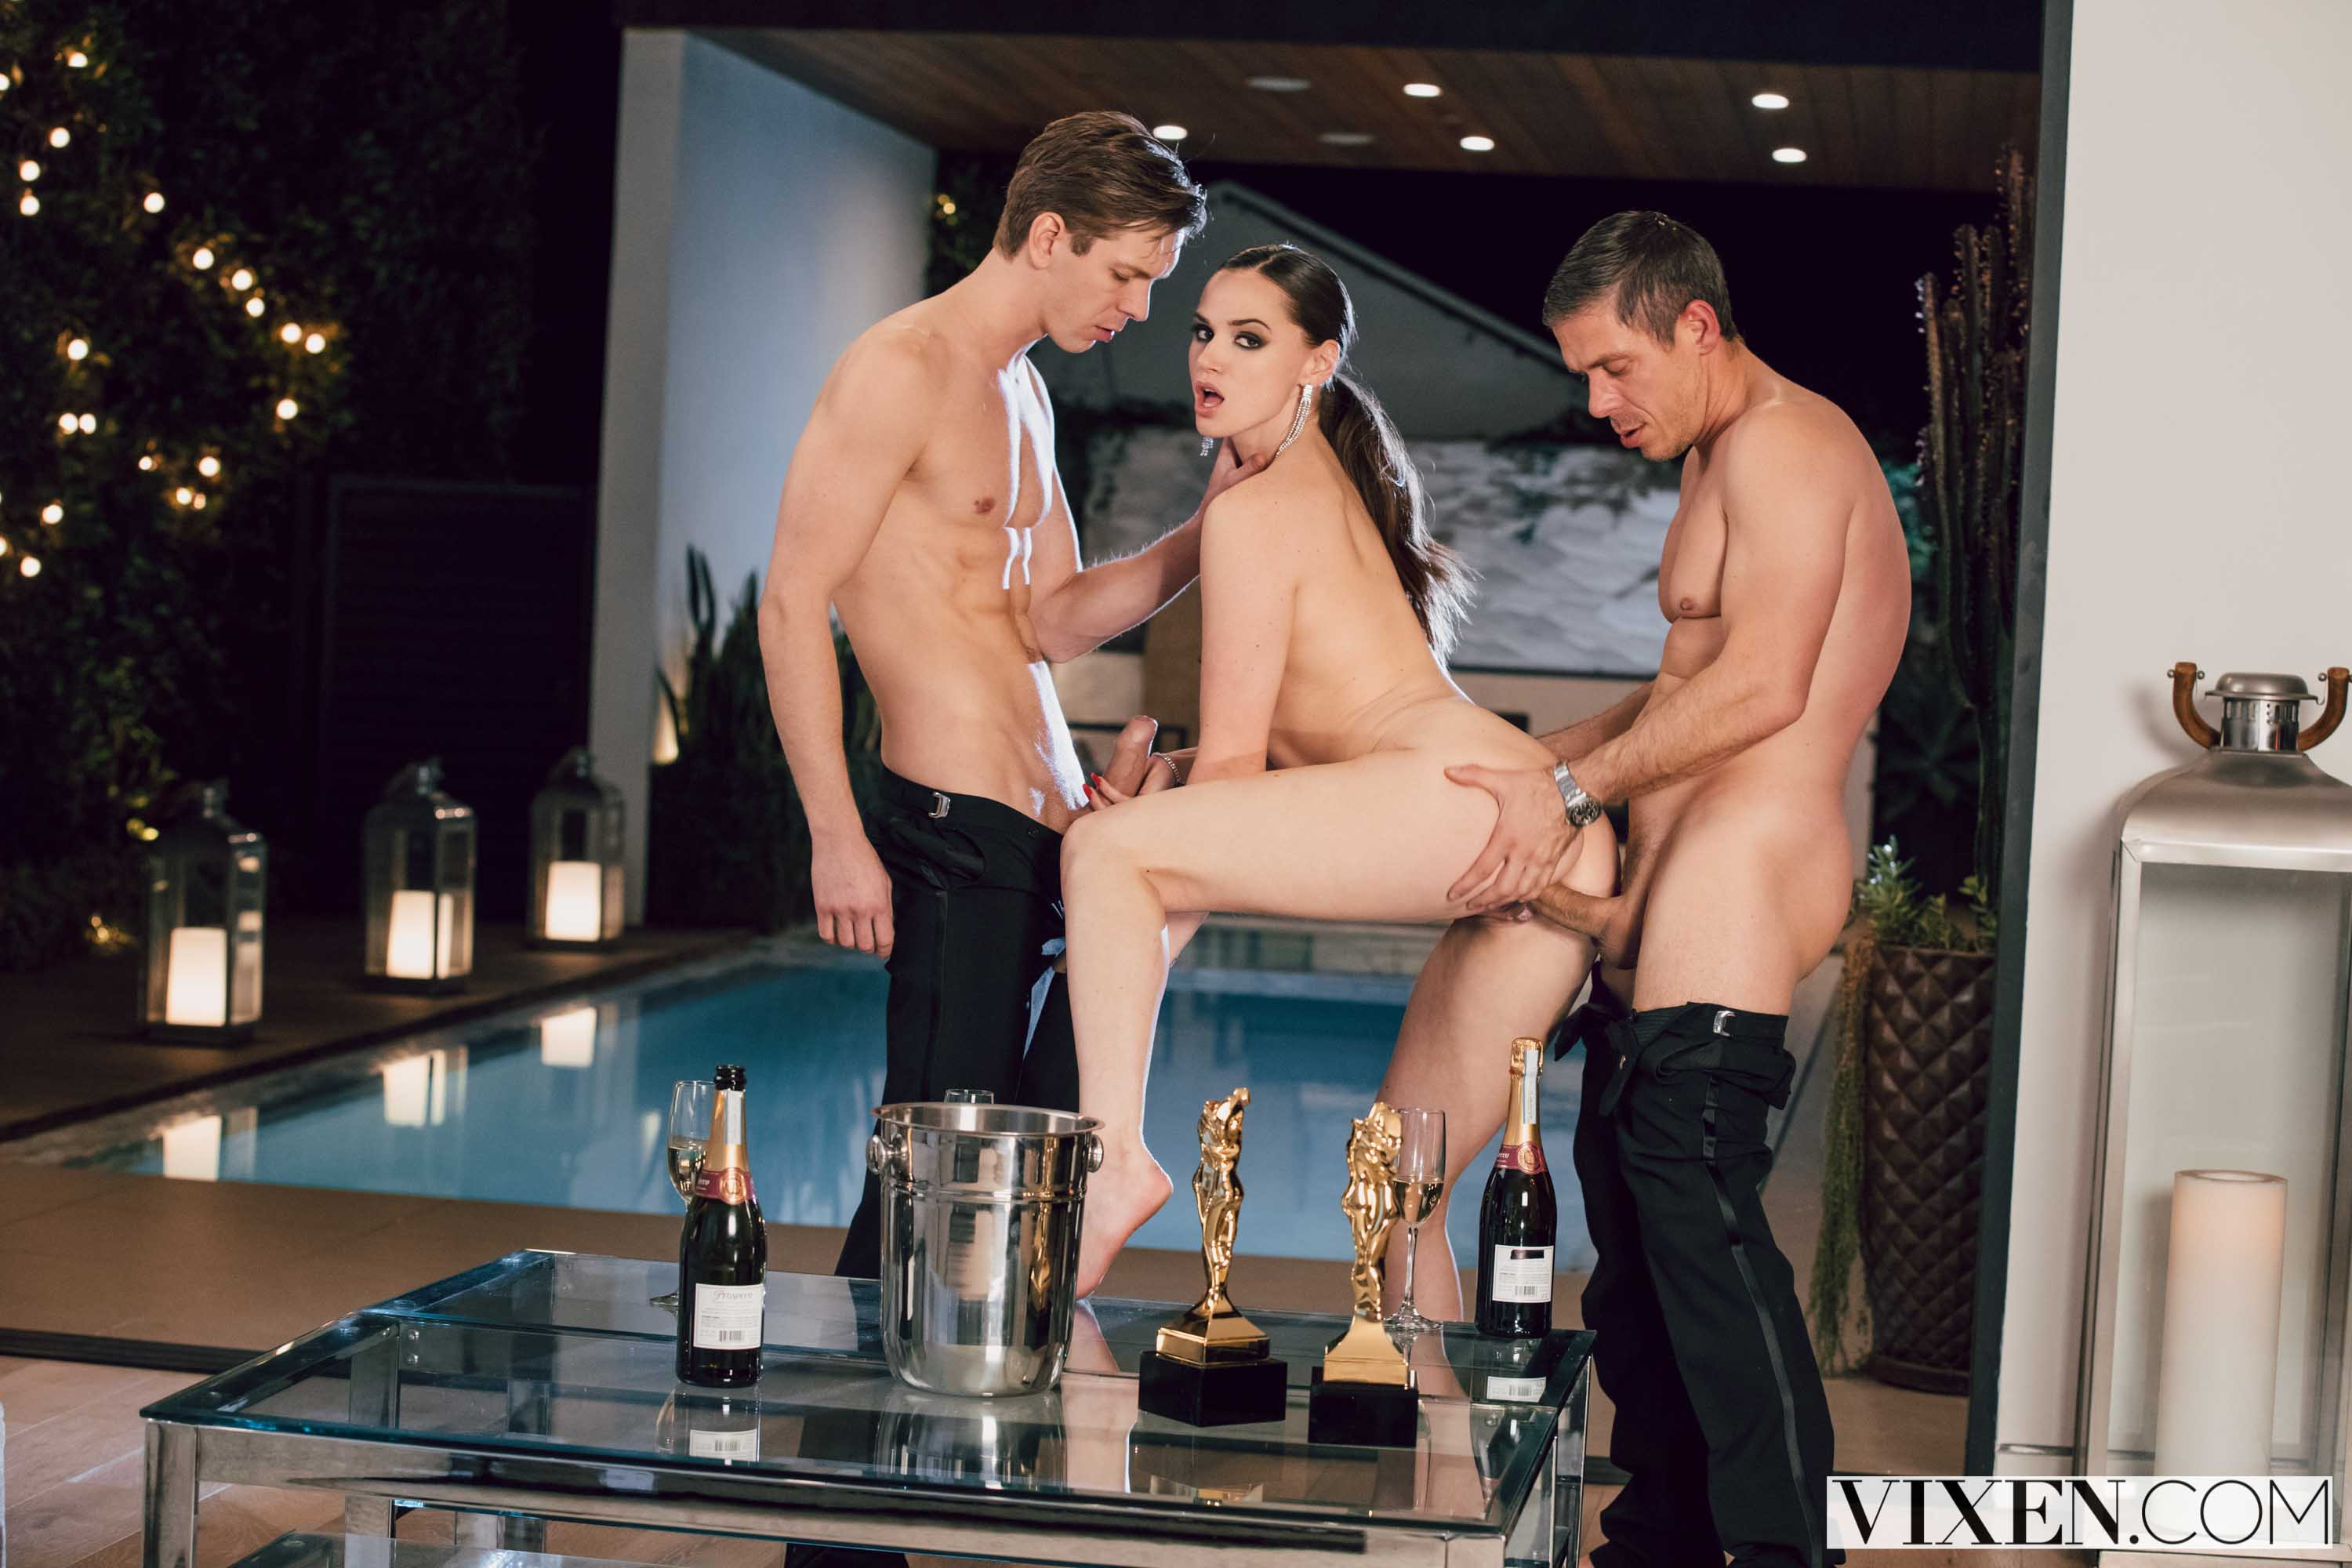 Tori Black - Award Season | Picture (4)